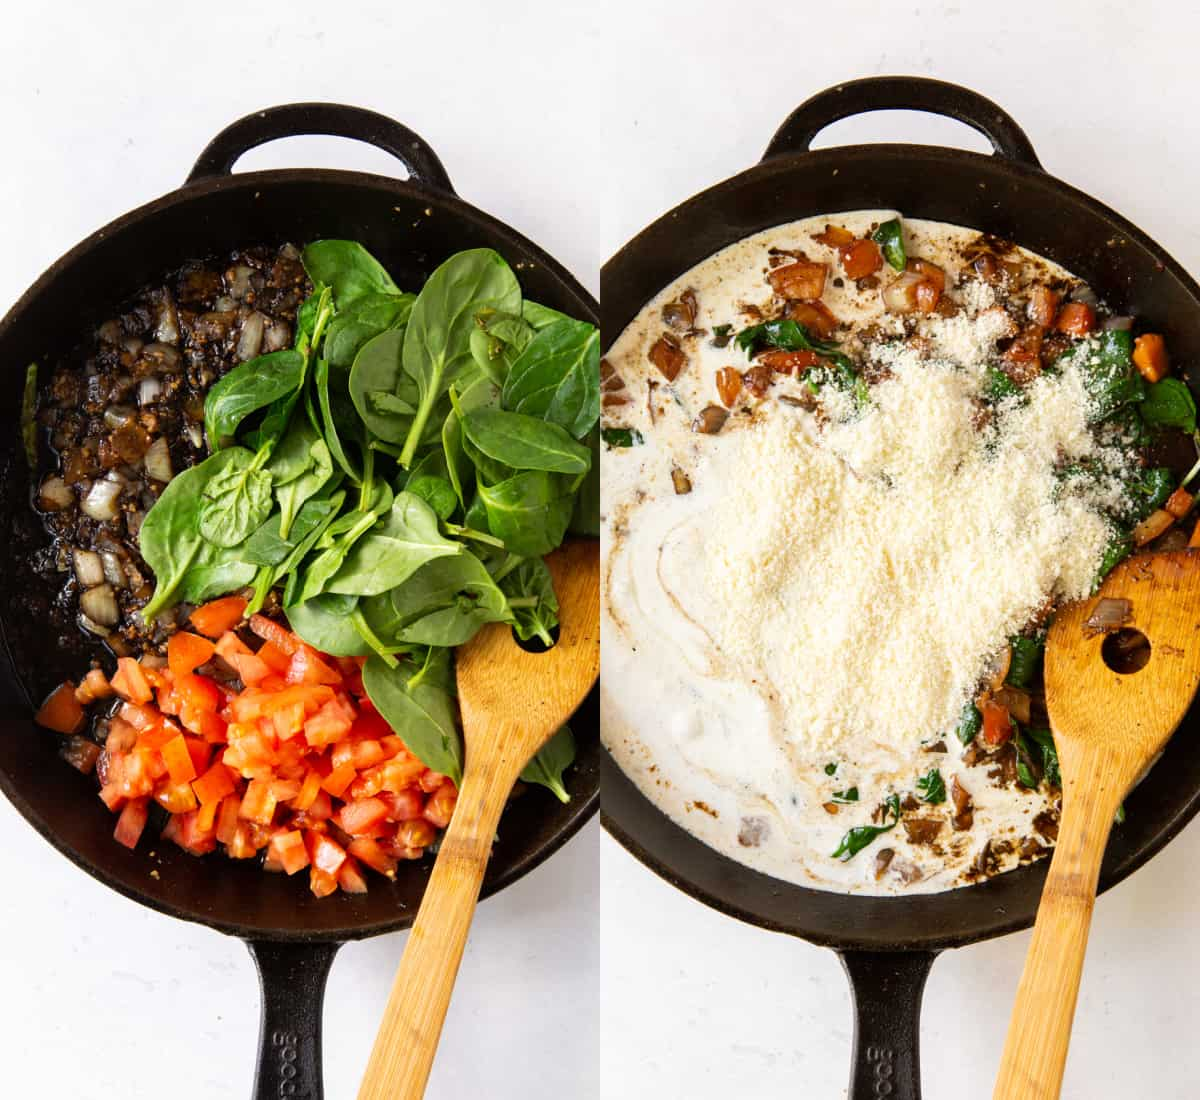 mixing together ingredients in skillet